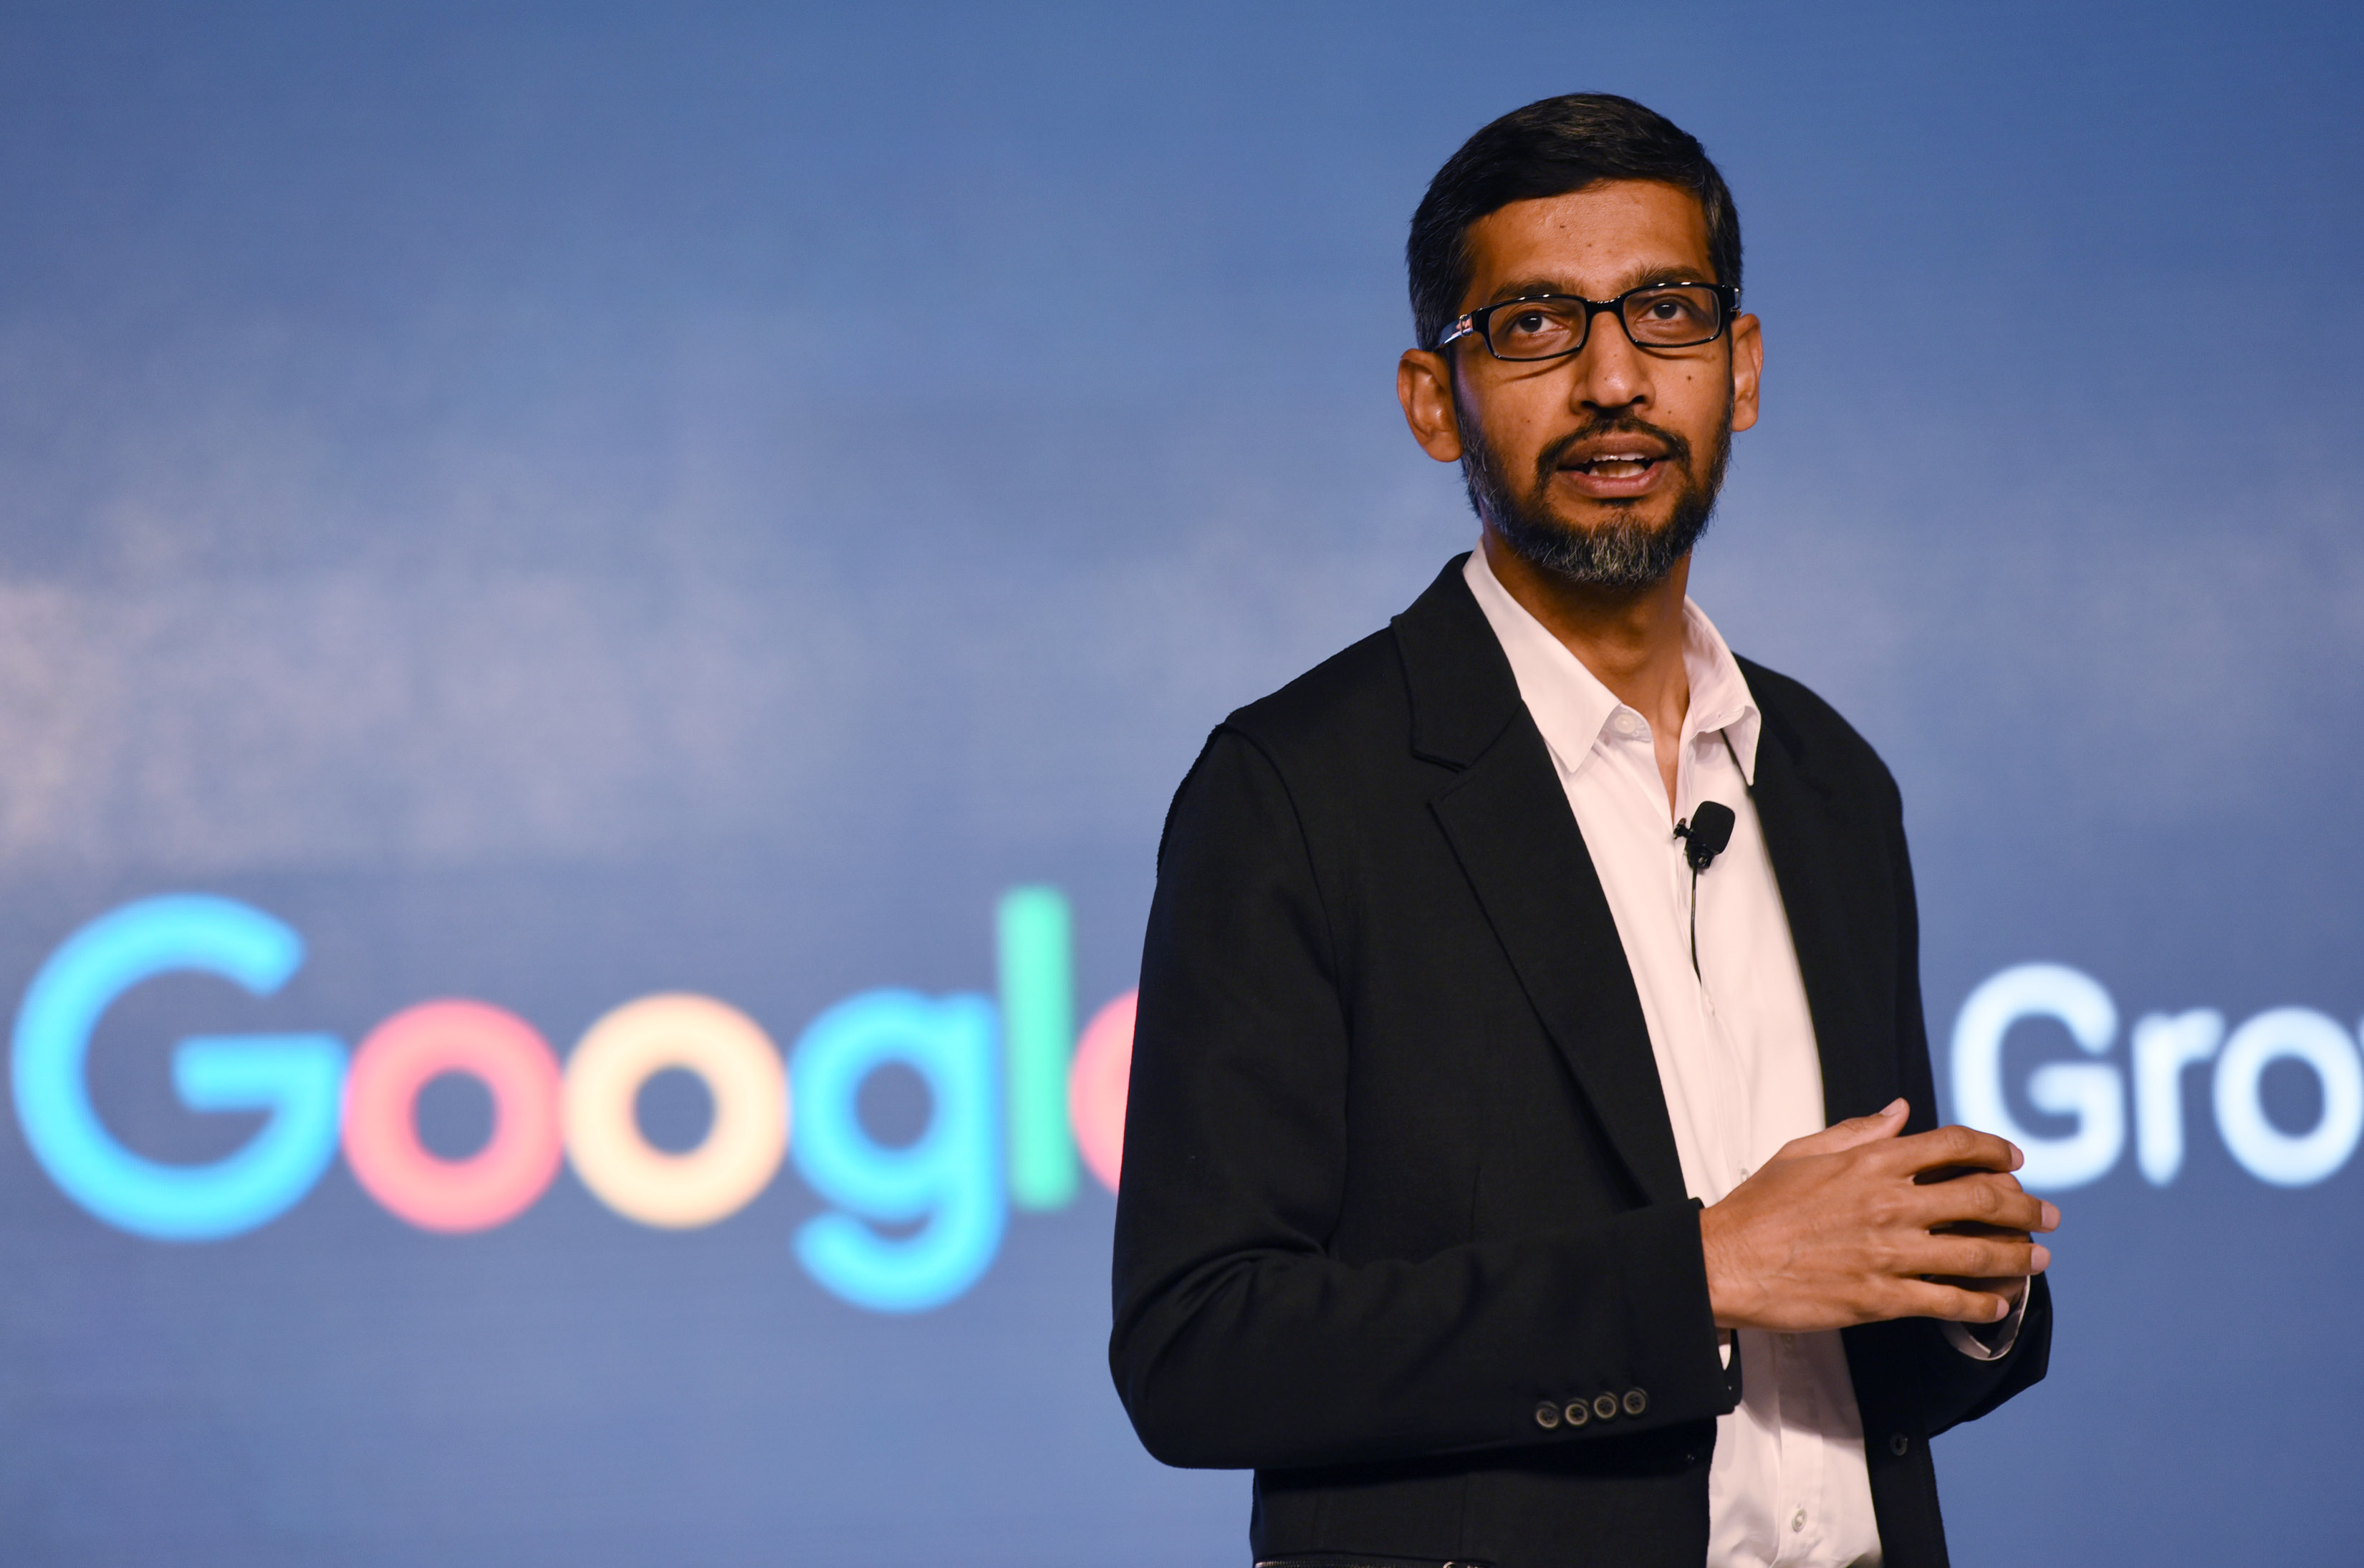 Google CEO Sundar Pichai at the event 'Google partnering with small businesses' at Taj Palace Hotel on January 4, 2017 in New Delhi, India. India-born chief executive of the world's largest Internet Company Google said that his company will work overtime